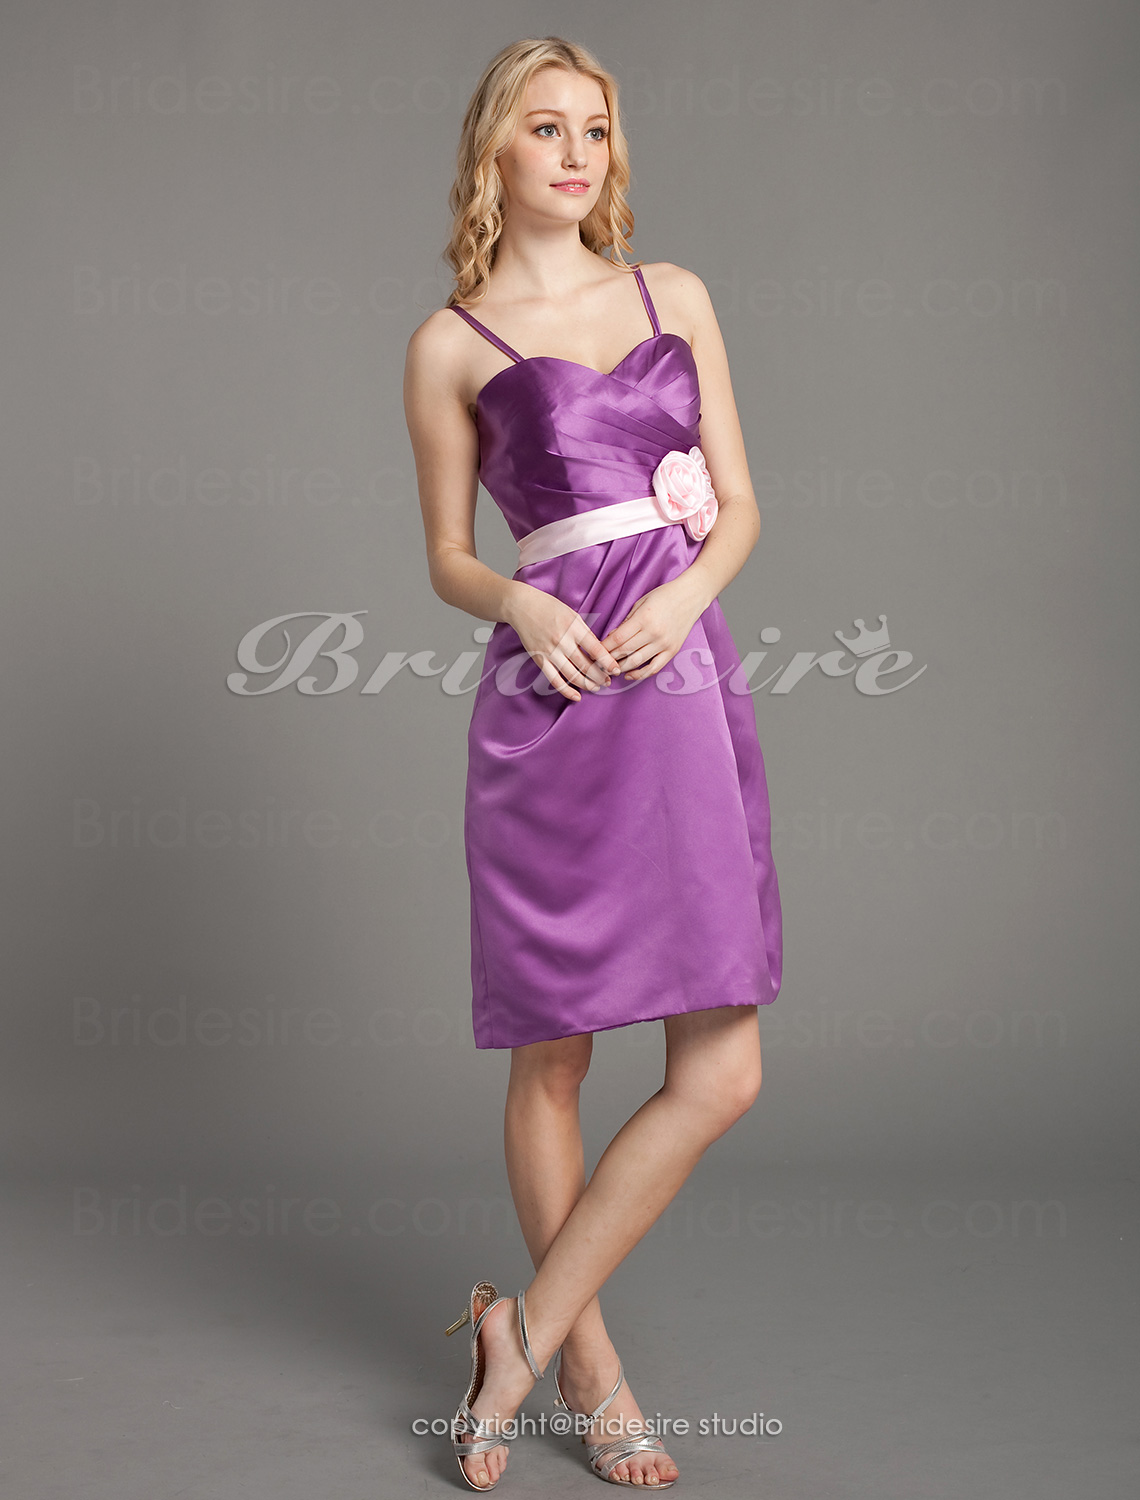 A-line Knee-length Sweetheart Cute Satin Bridesmaid Dress with Removale Straps